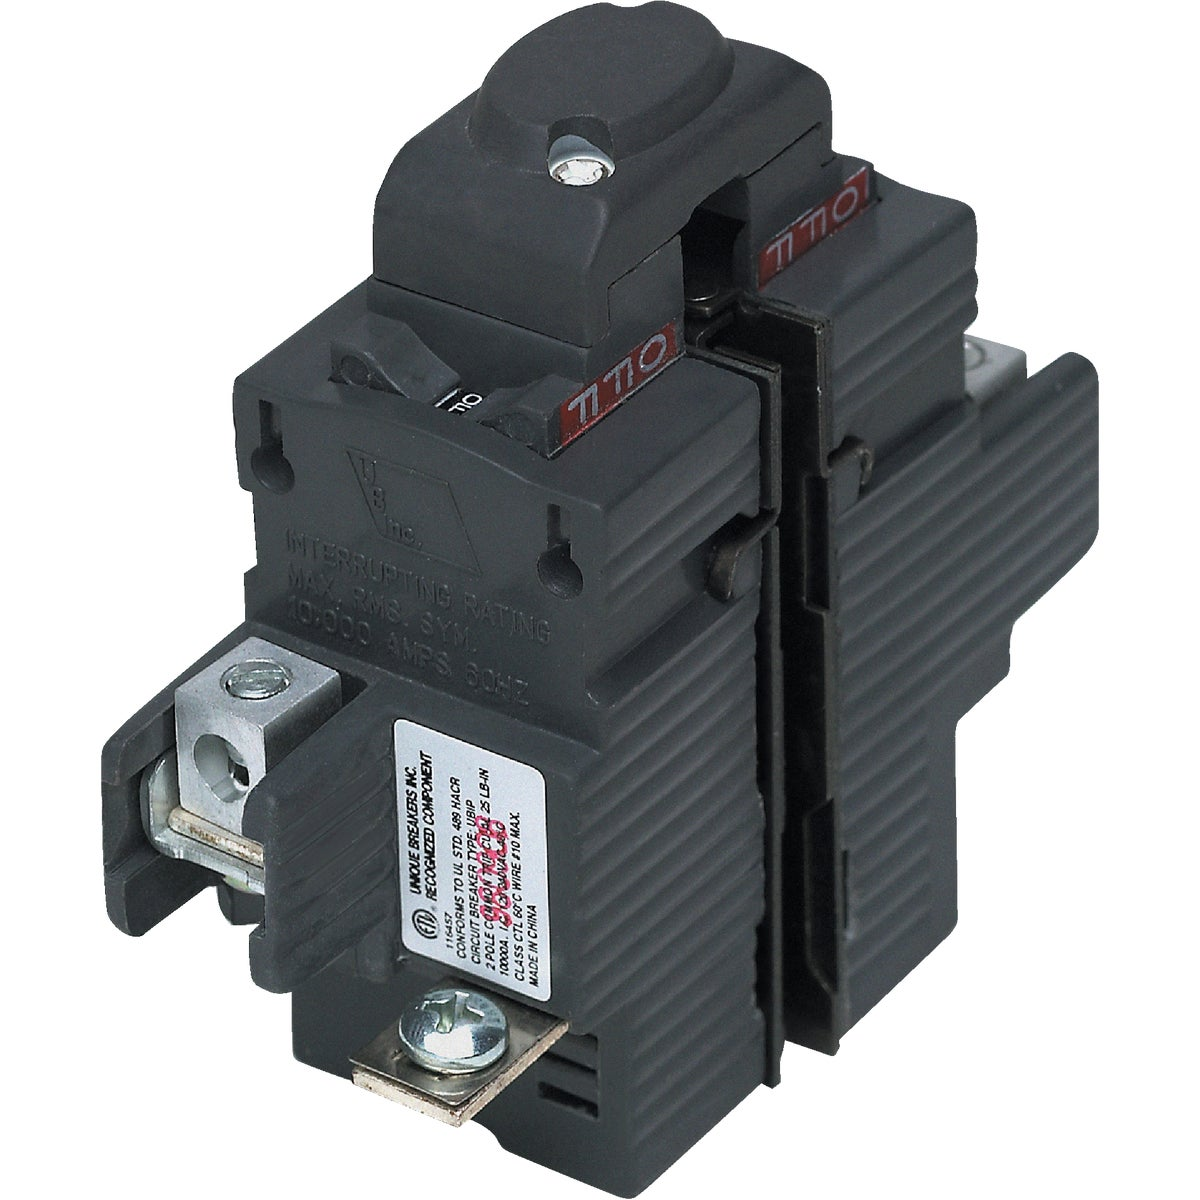 60A 2P CIRCUIT BREAKER - UBIP260 by Connecticut Electric